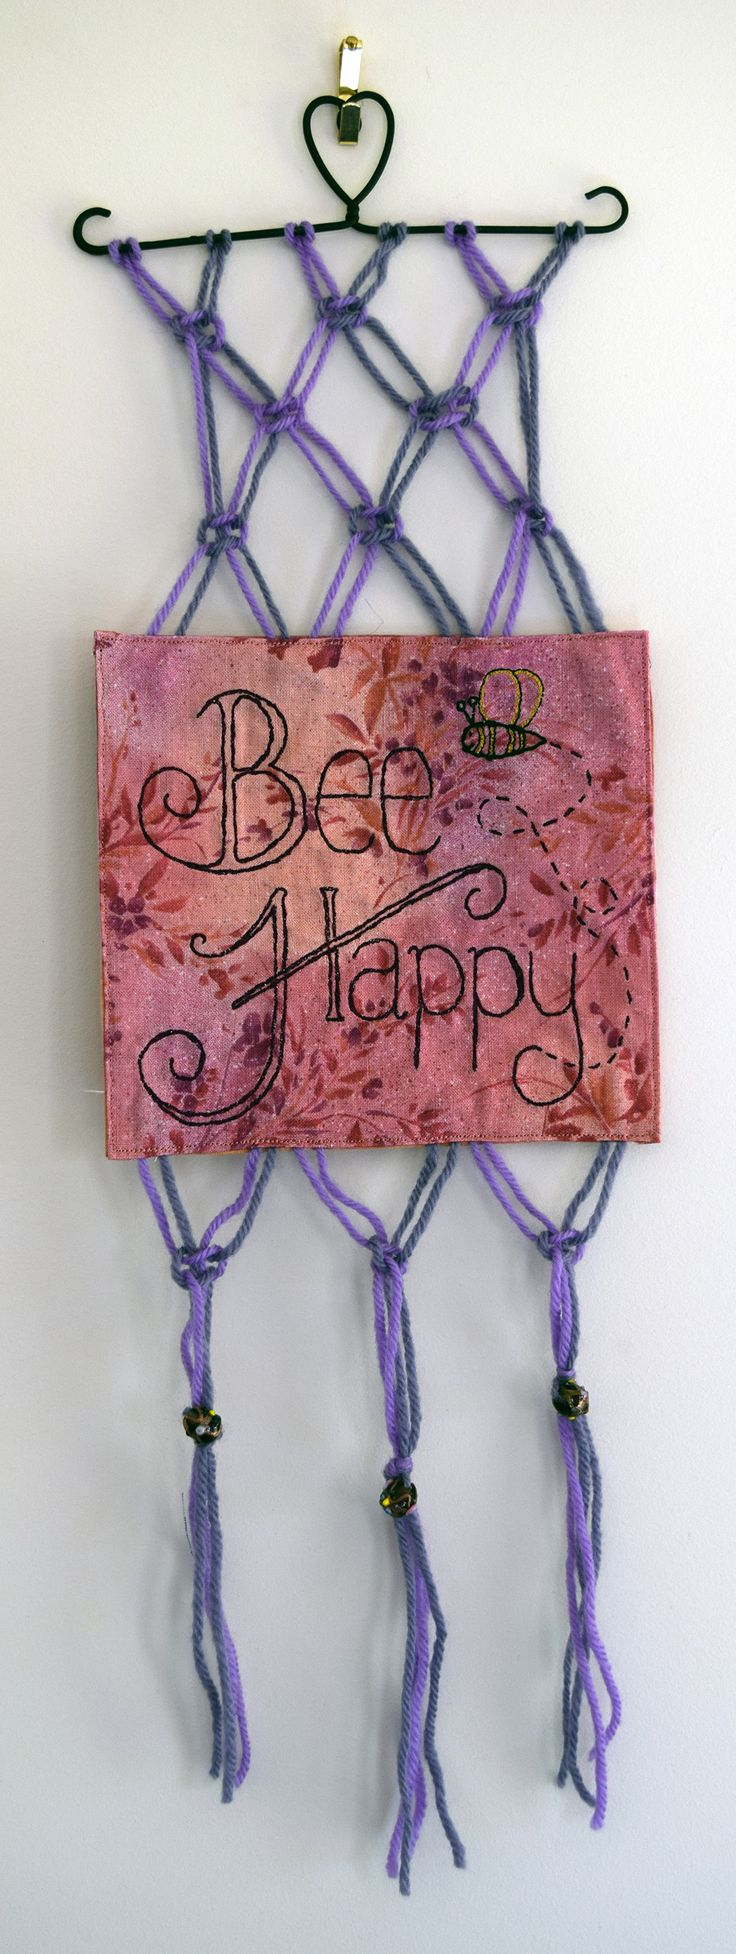 'Bee Happy' Wall Hanging - Handmade machine embroidery macrame wall hanging!  https://www.etsy.com/listing/243638068/bee-happy-handmade-machine-embroidery?ref=shop_home_active_5